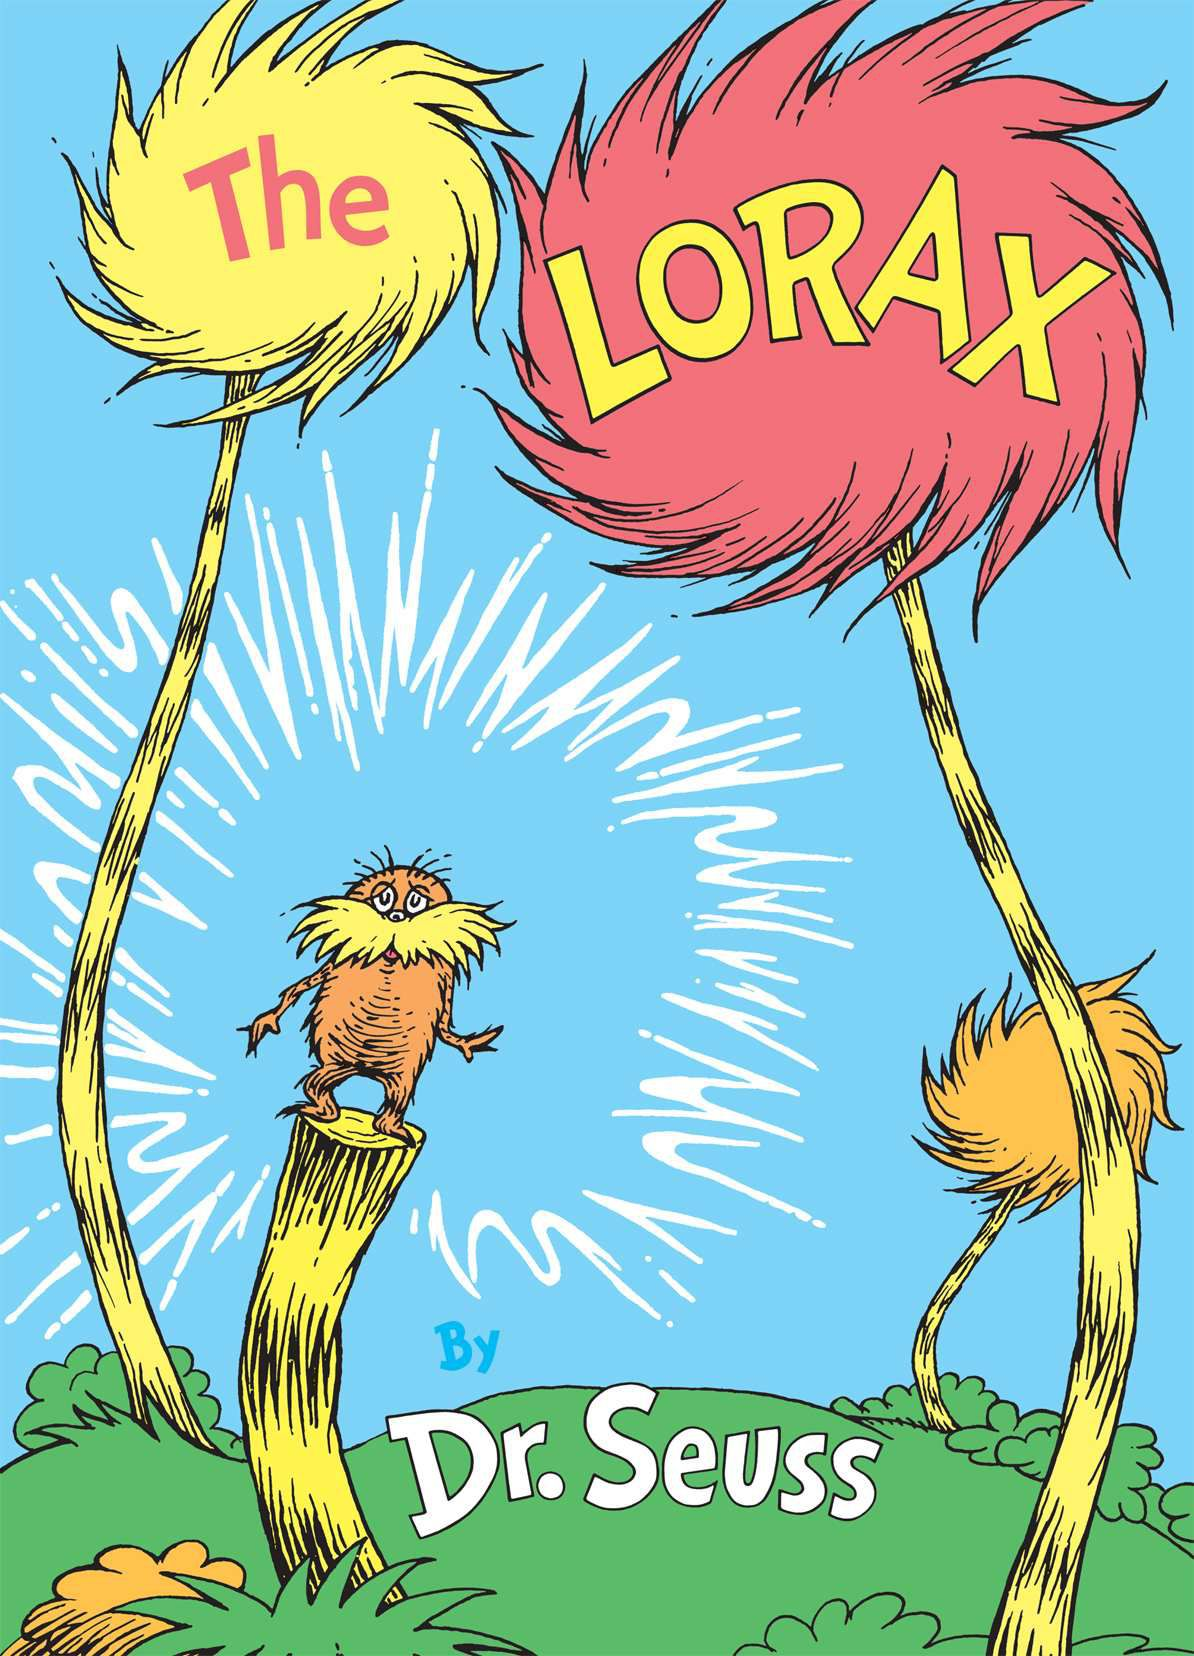 use dr seuss for literary criticism and analysis celebrate the environment dr seuss the lorax